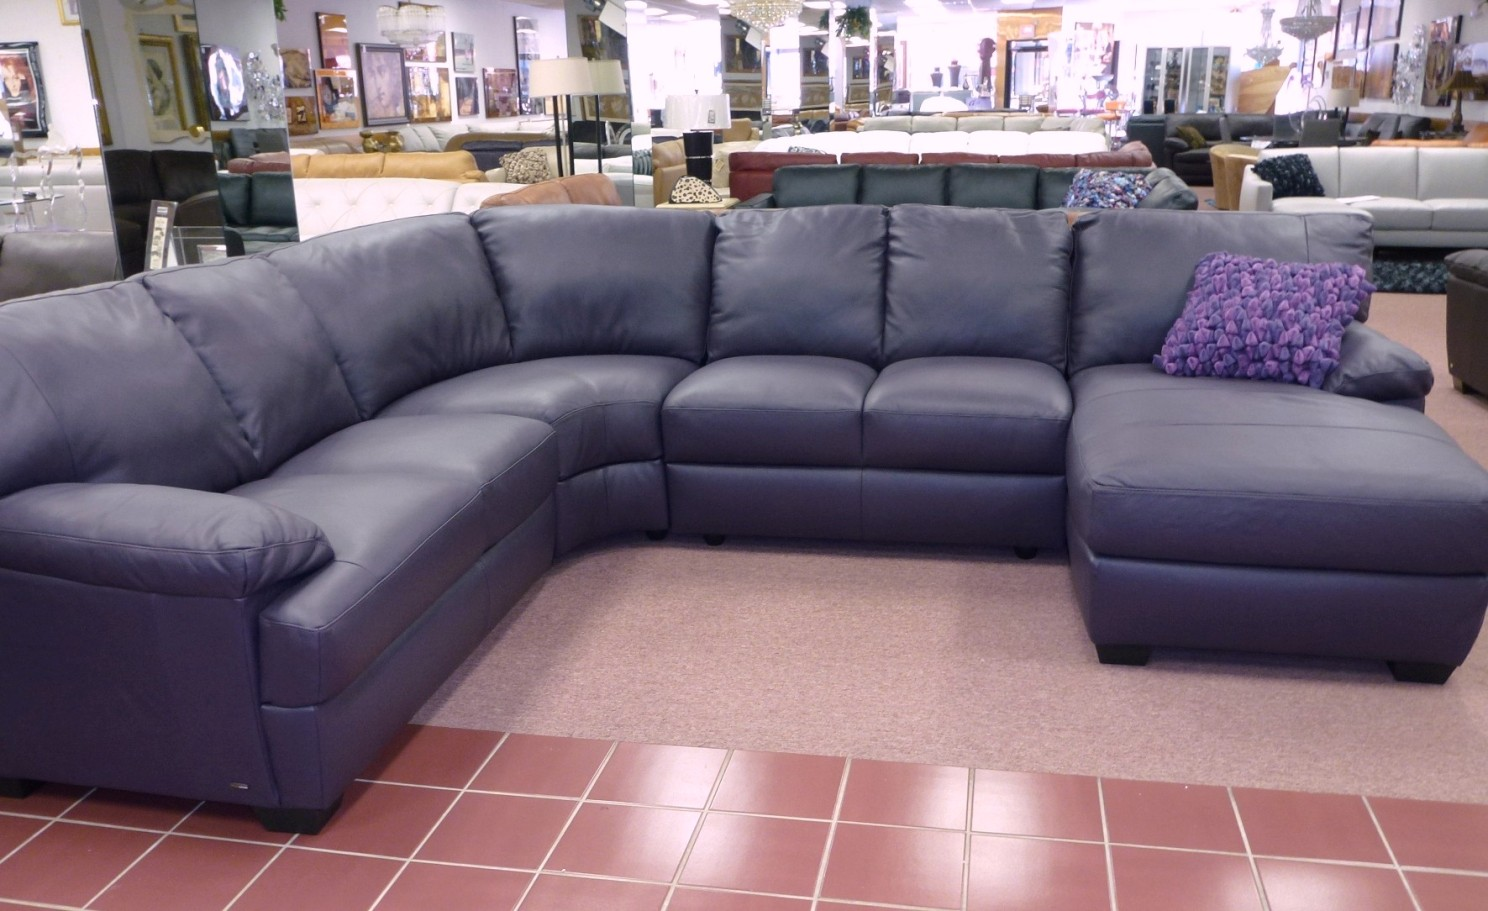 Eggplant Color Sofa Sectional Connecting Brackets Natuzzi Leather Sofas And Sectionals By Interior Concepts